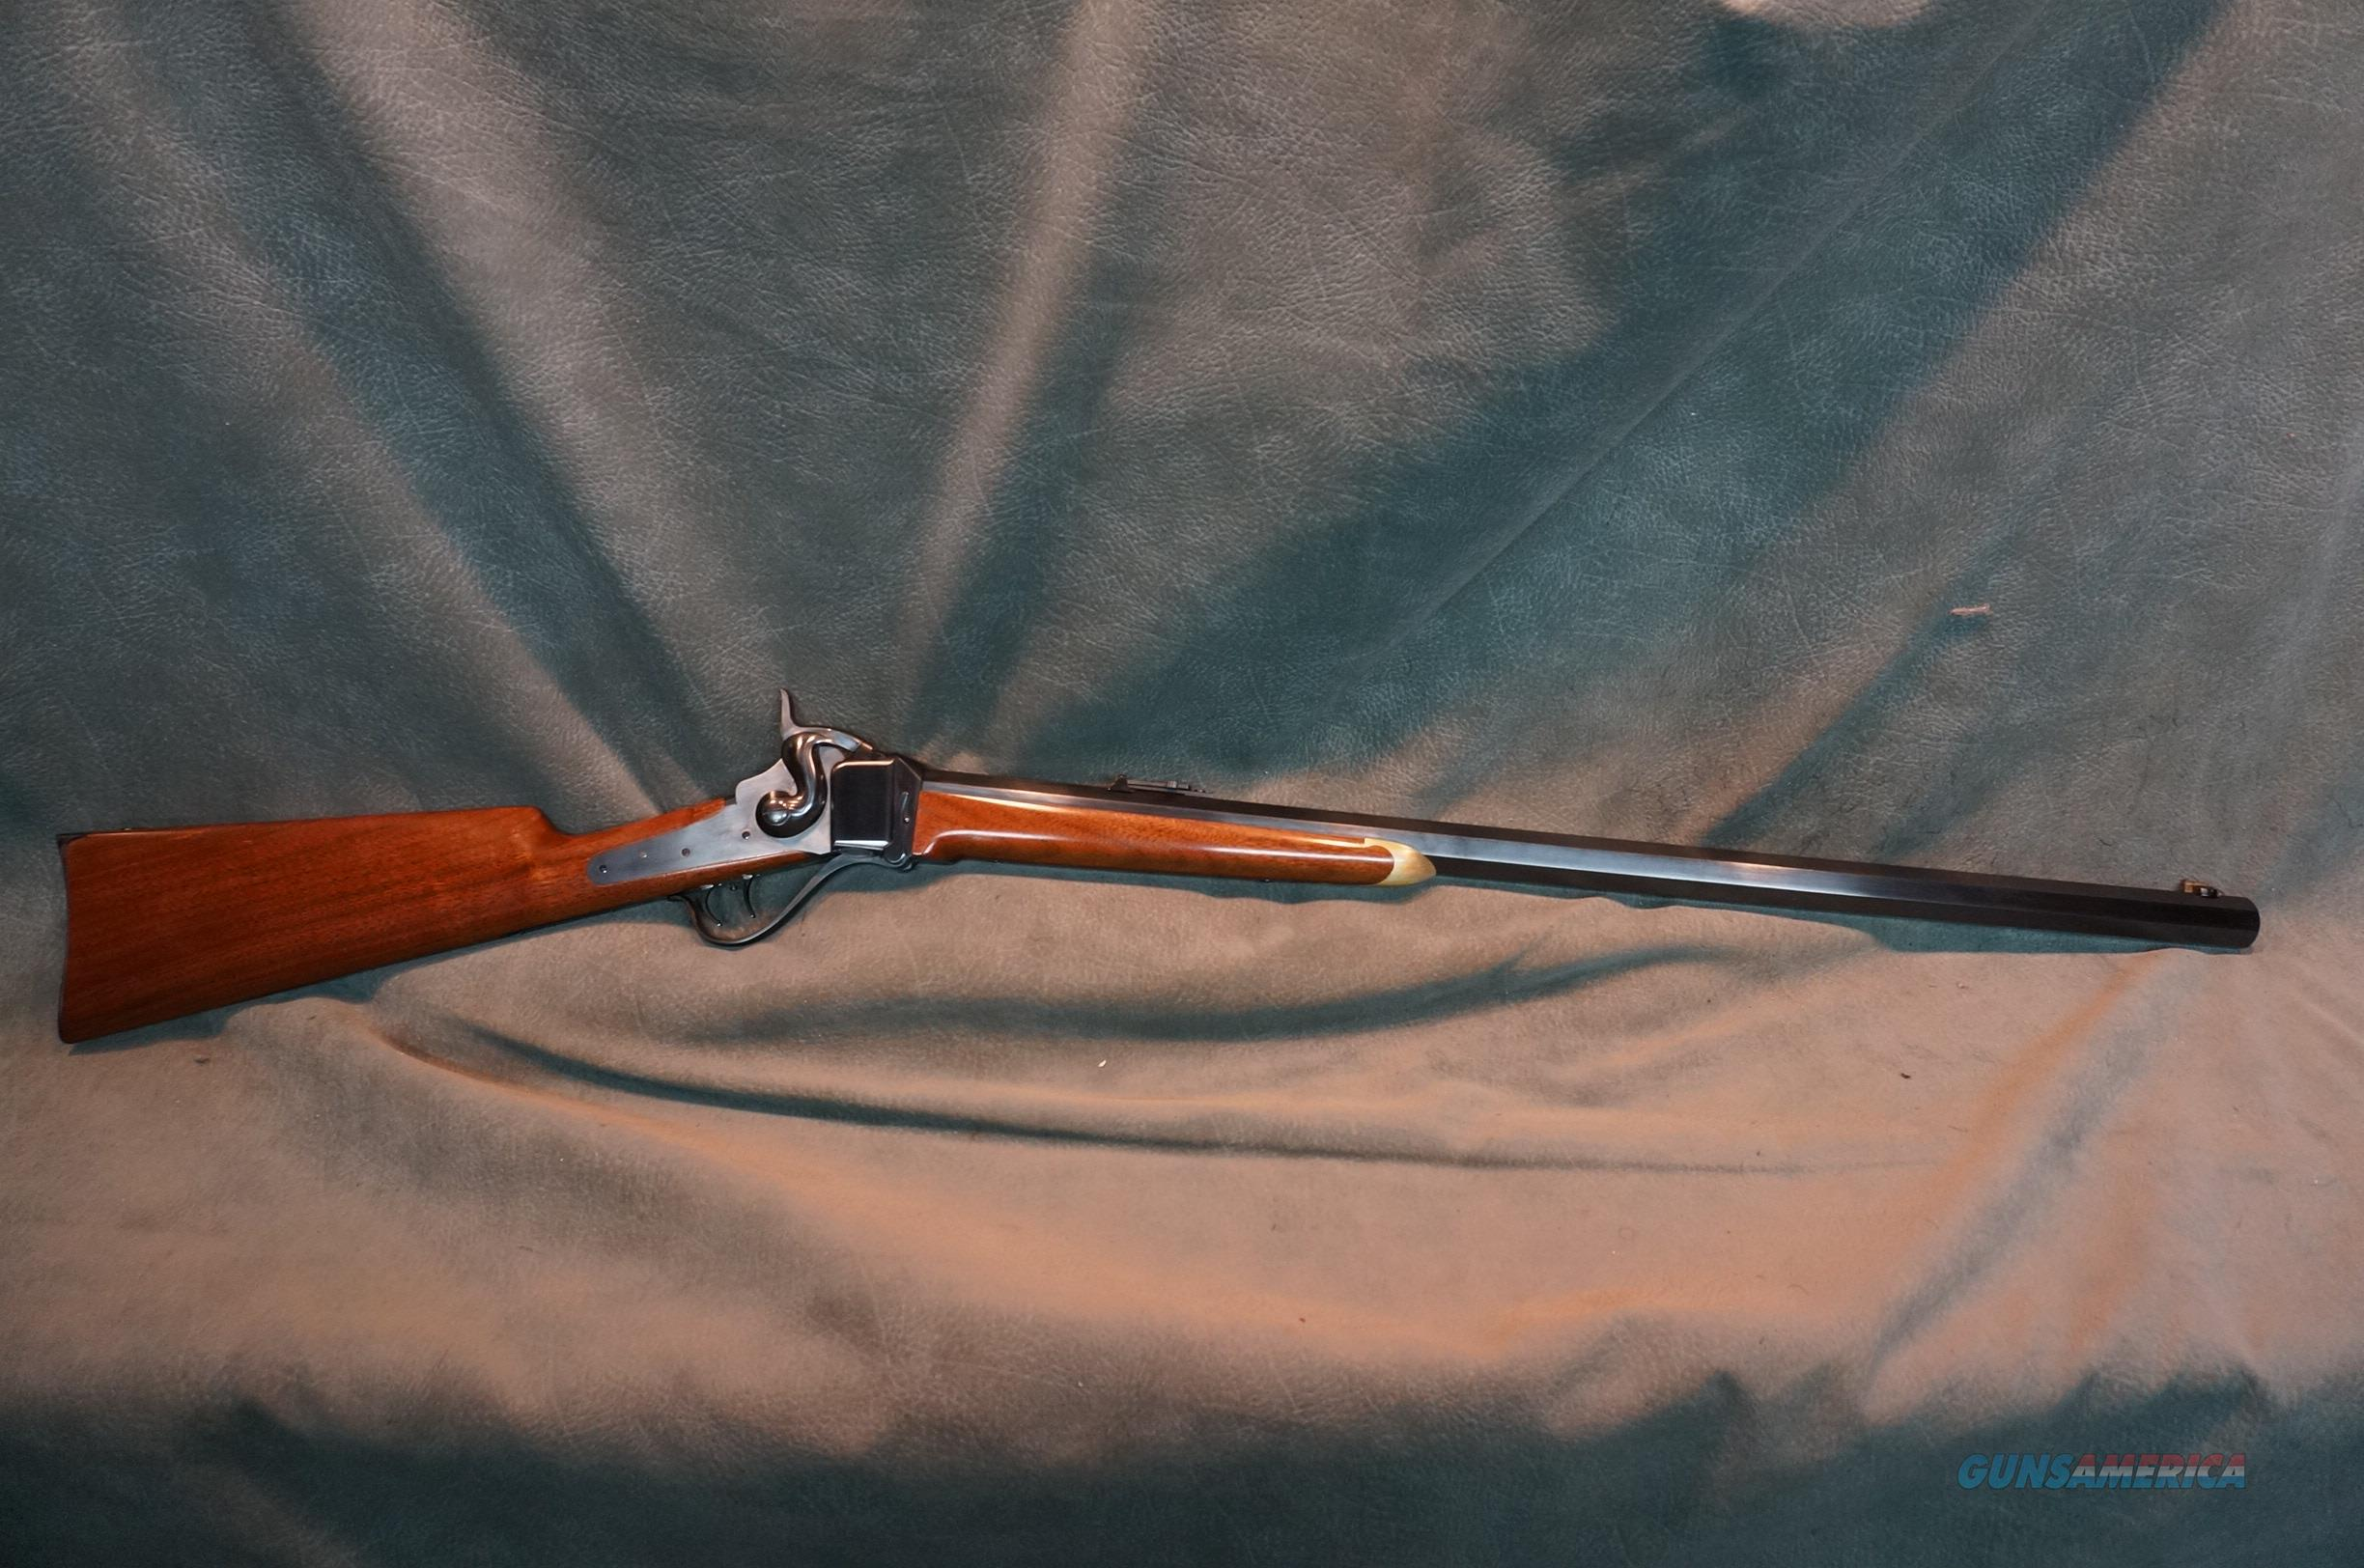 Custom 1874 Sharps 45-70 by Kent Fish Rapid City SD  Guns > Rifles > Sharps Rifles - Replica